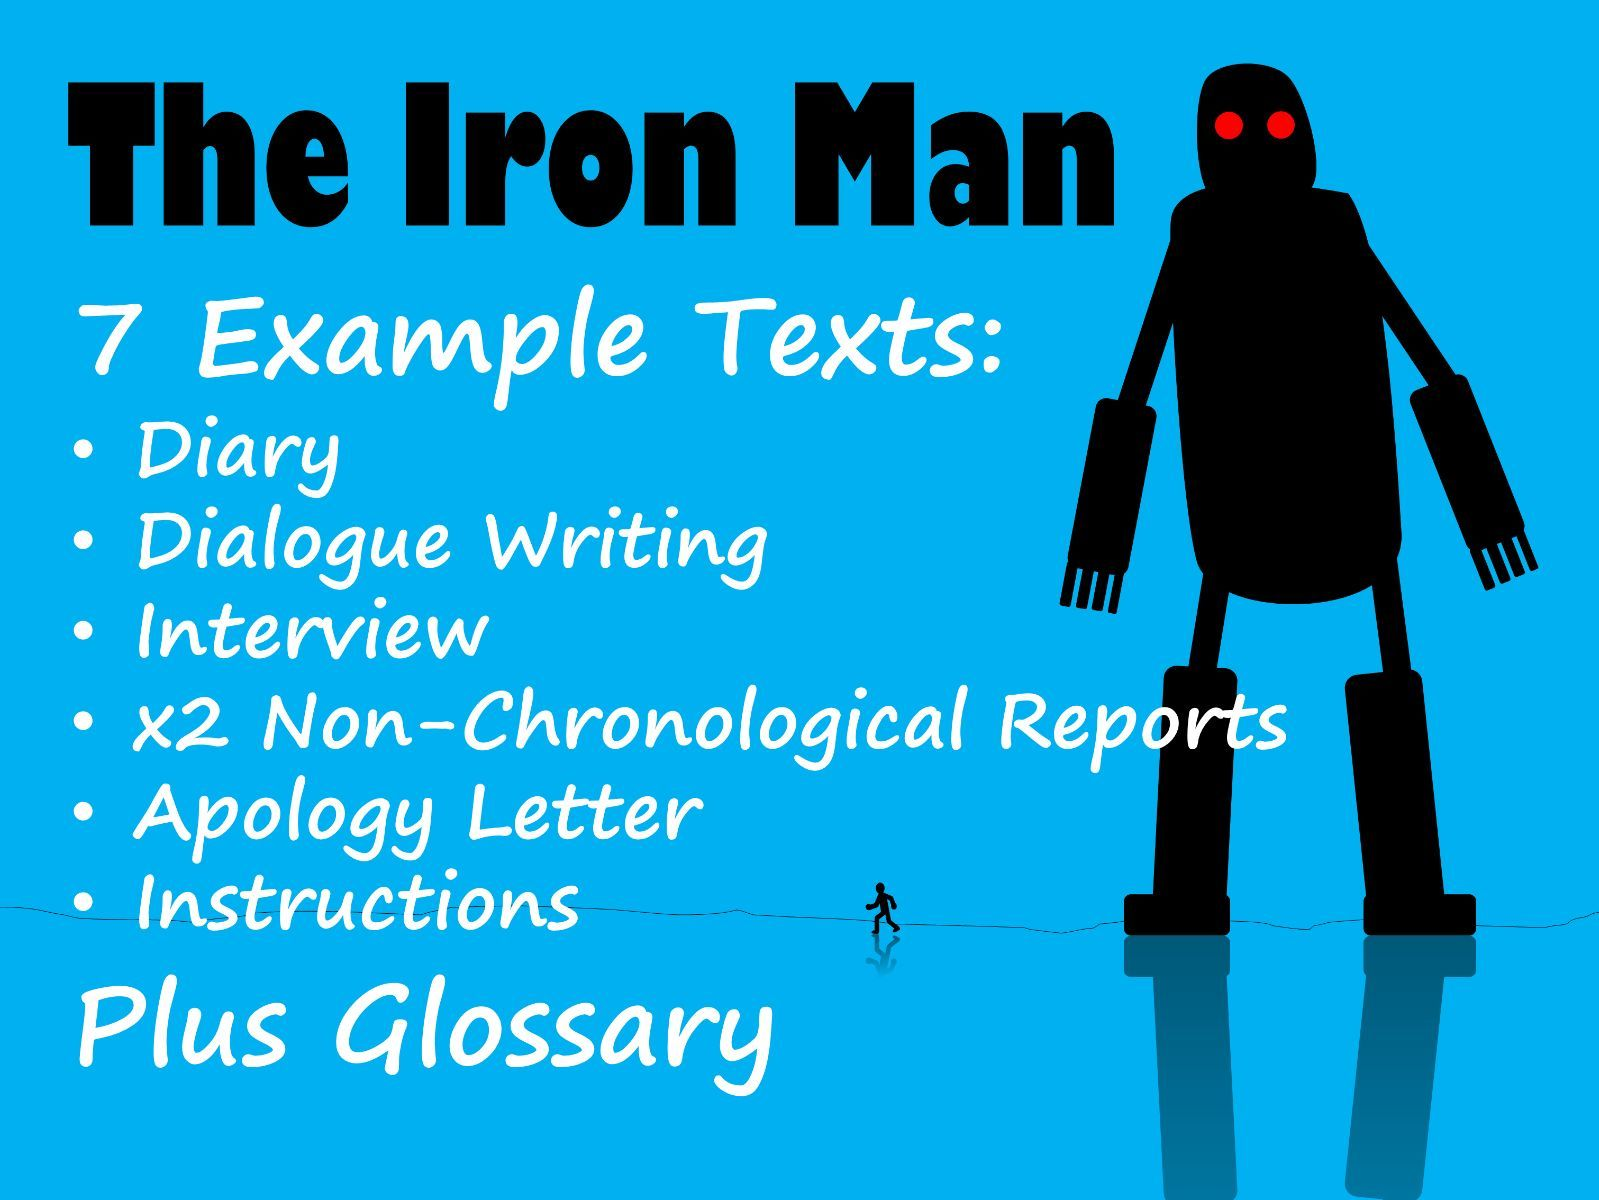 Iron Man 7 Example Texts & Glossary BUNDLE with Feature Identification & Answers